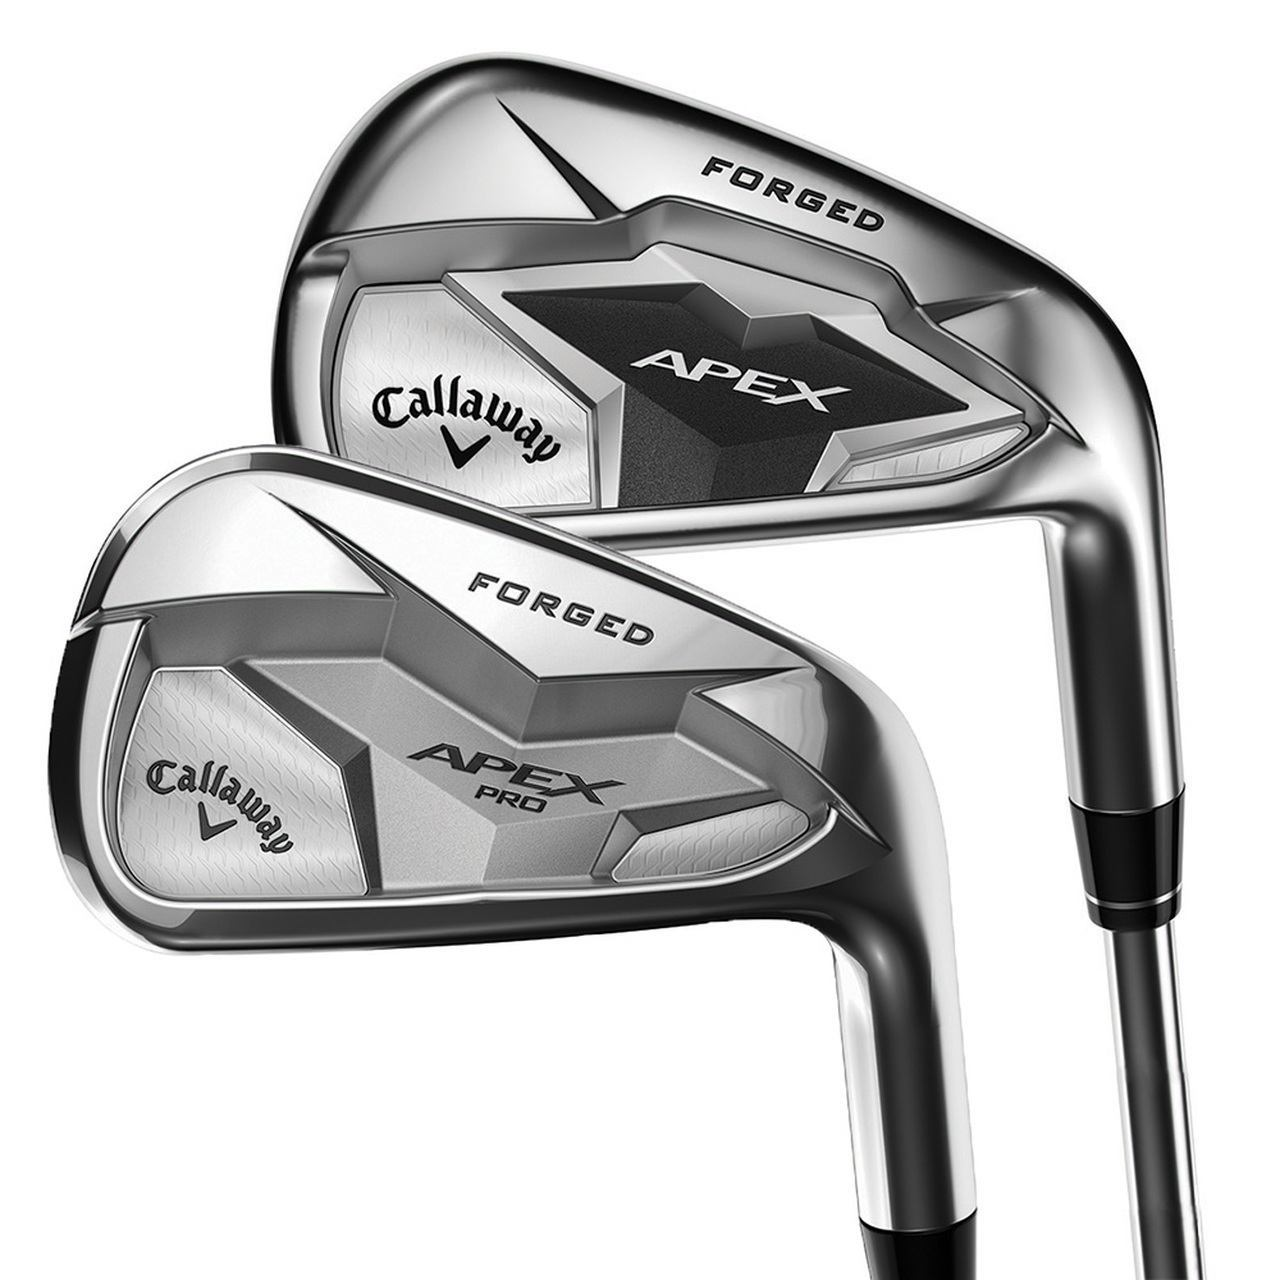 Callaway apex 19 and apex pro irons